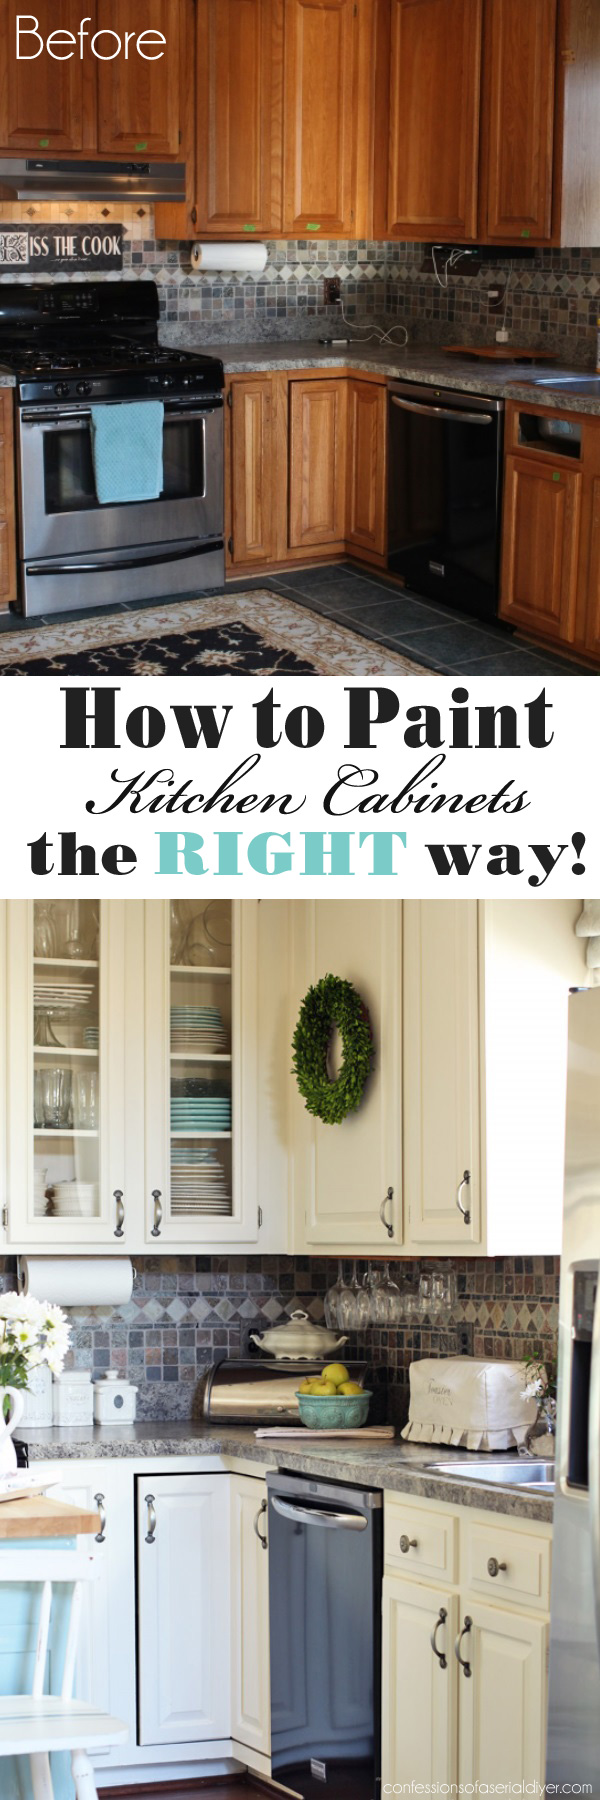 What Kind Of Paint Do I Use On Kitchen Cabinets